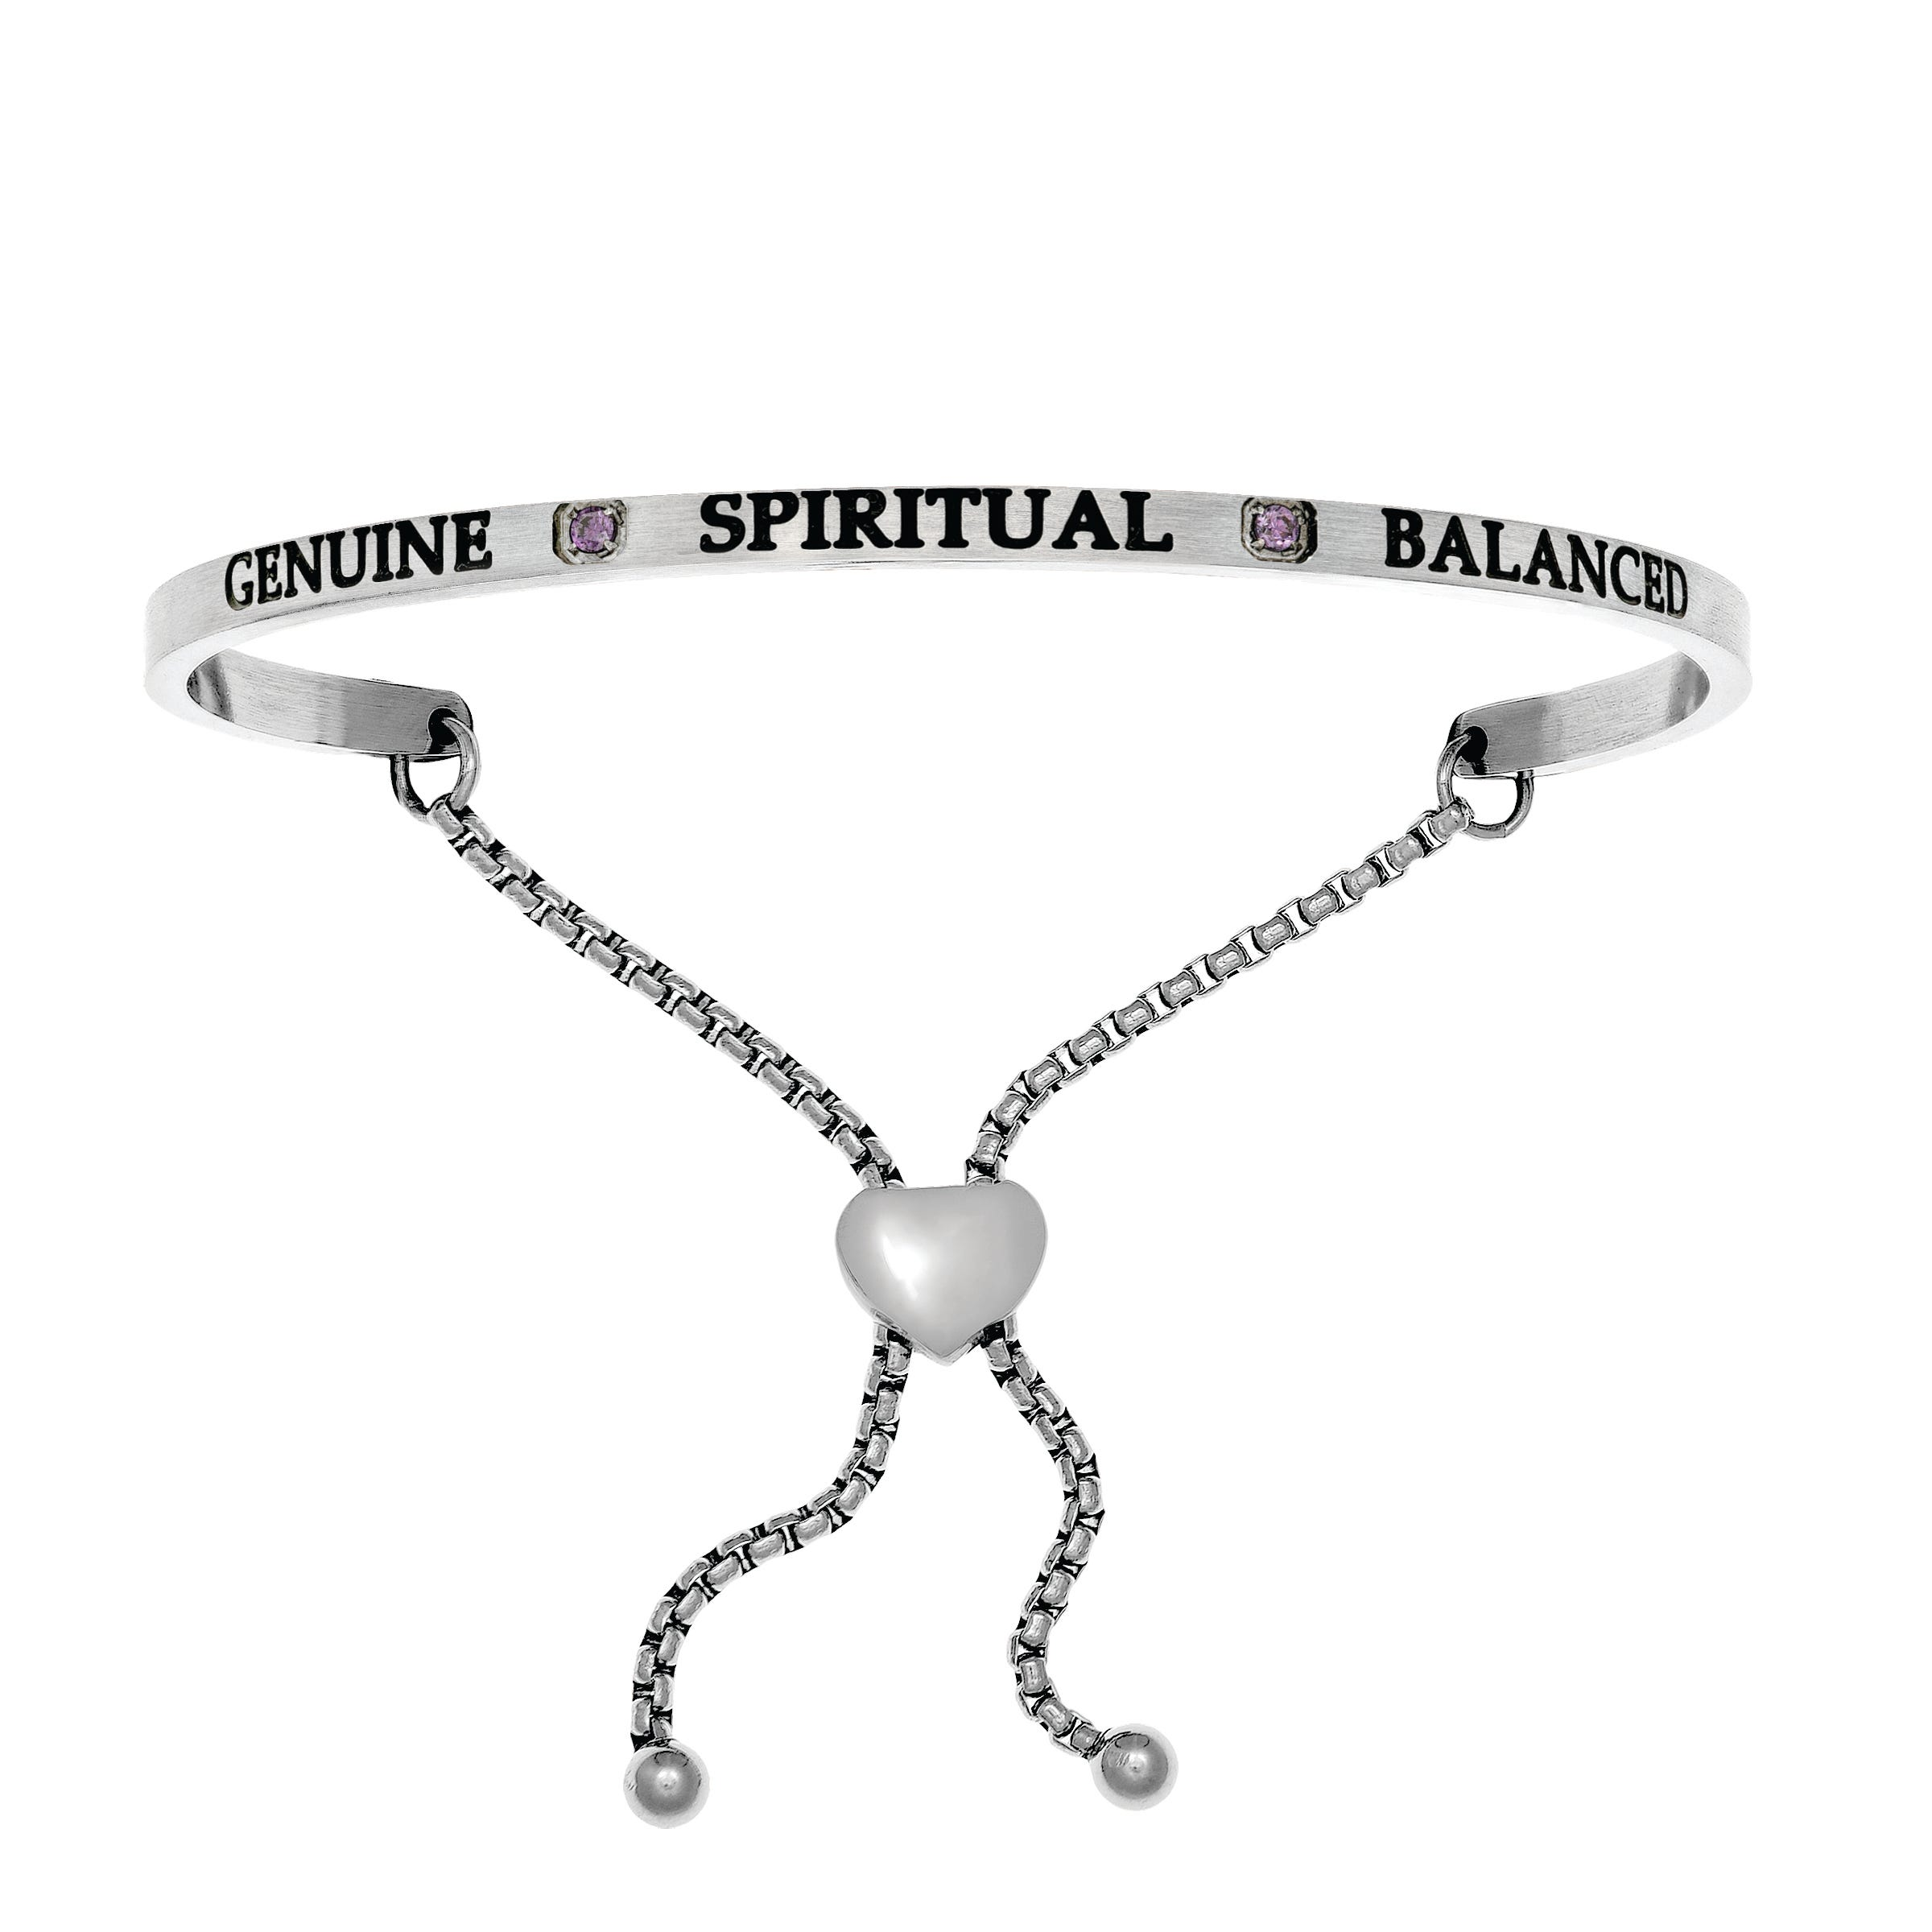 Genuine & Spiritual February. Intuitions Bolo Bracelet in White Stainless Steel